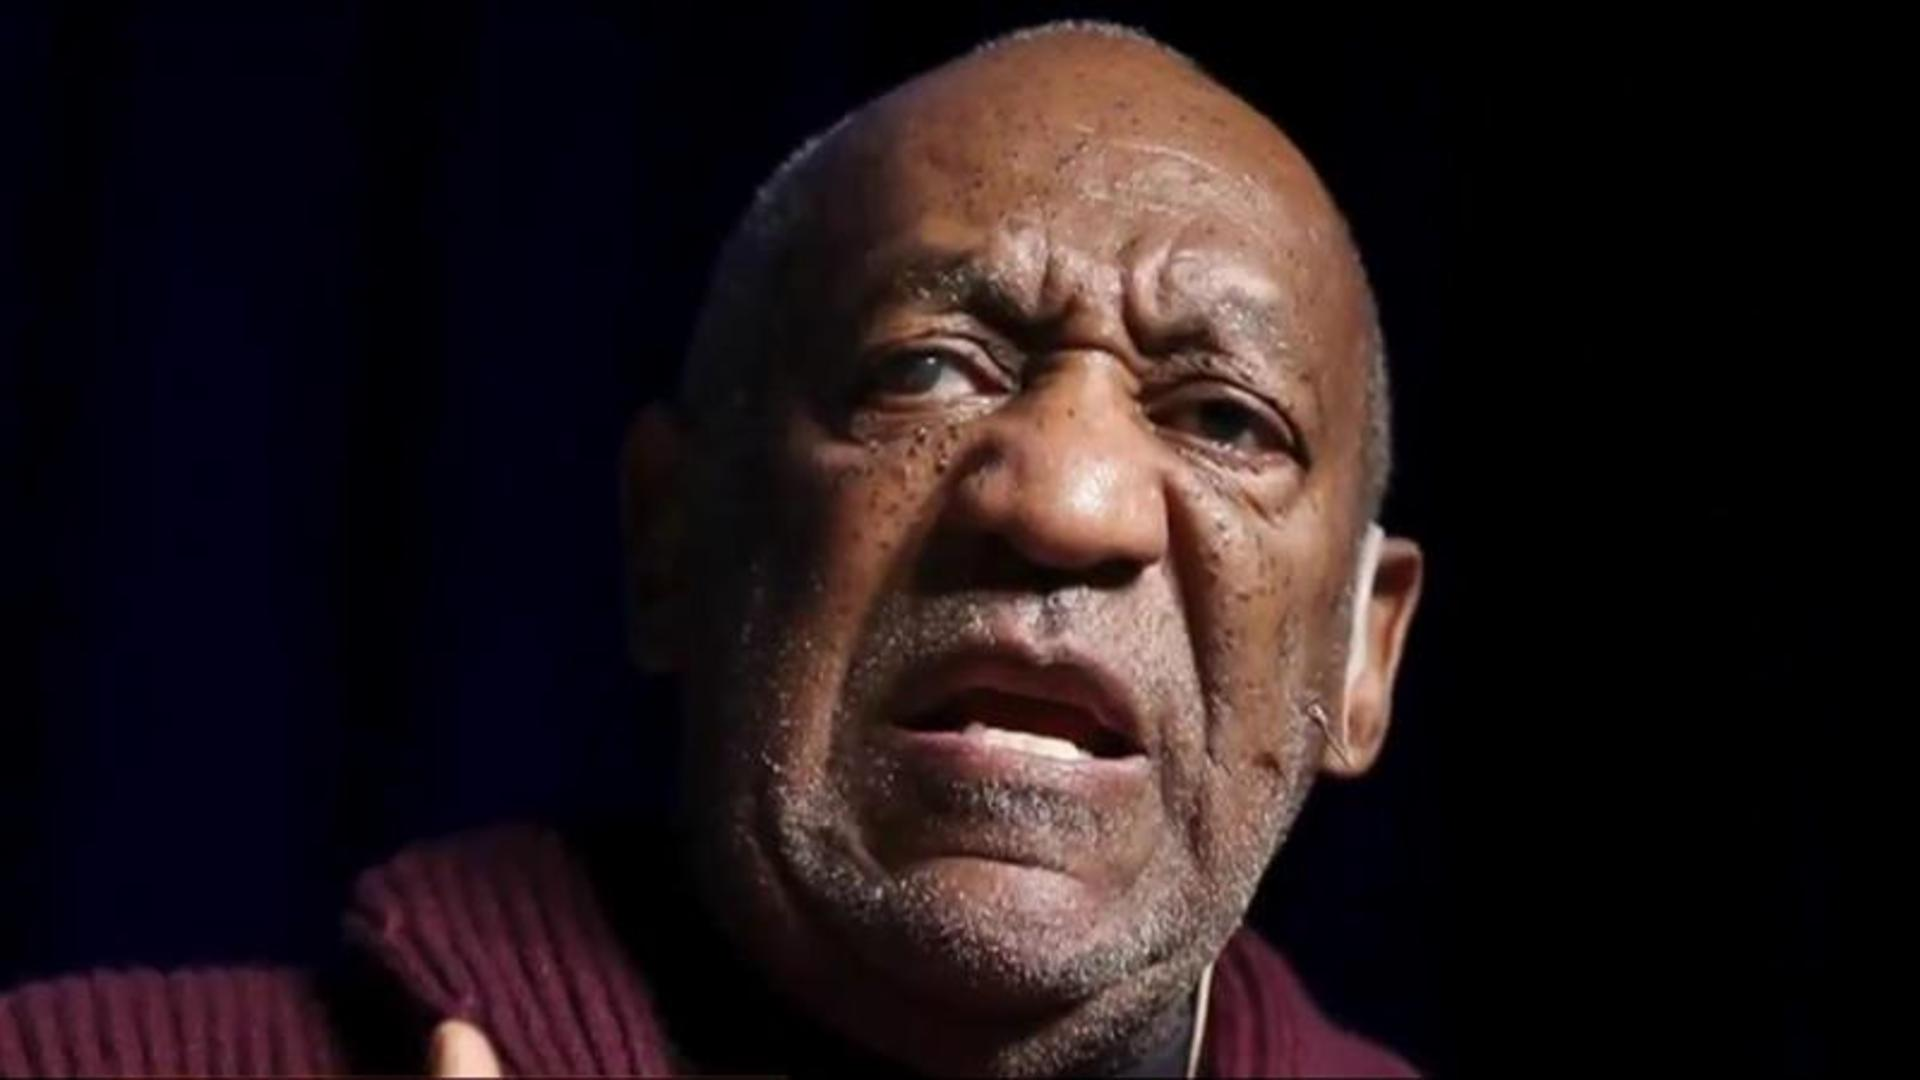 Bill Cosby Says 58 Women Accusing Him Of Sexual Misconduct Are 'Piling On'